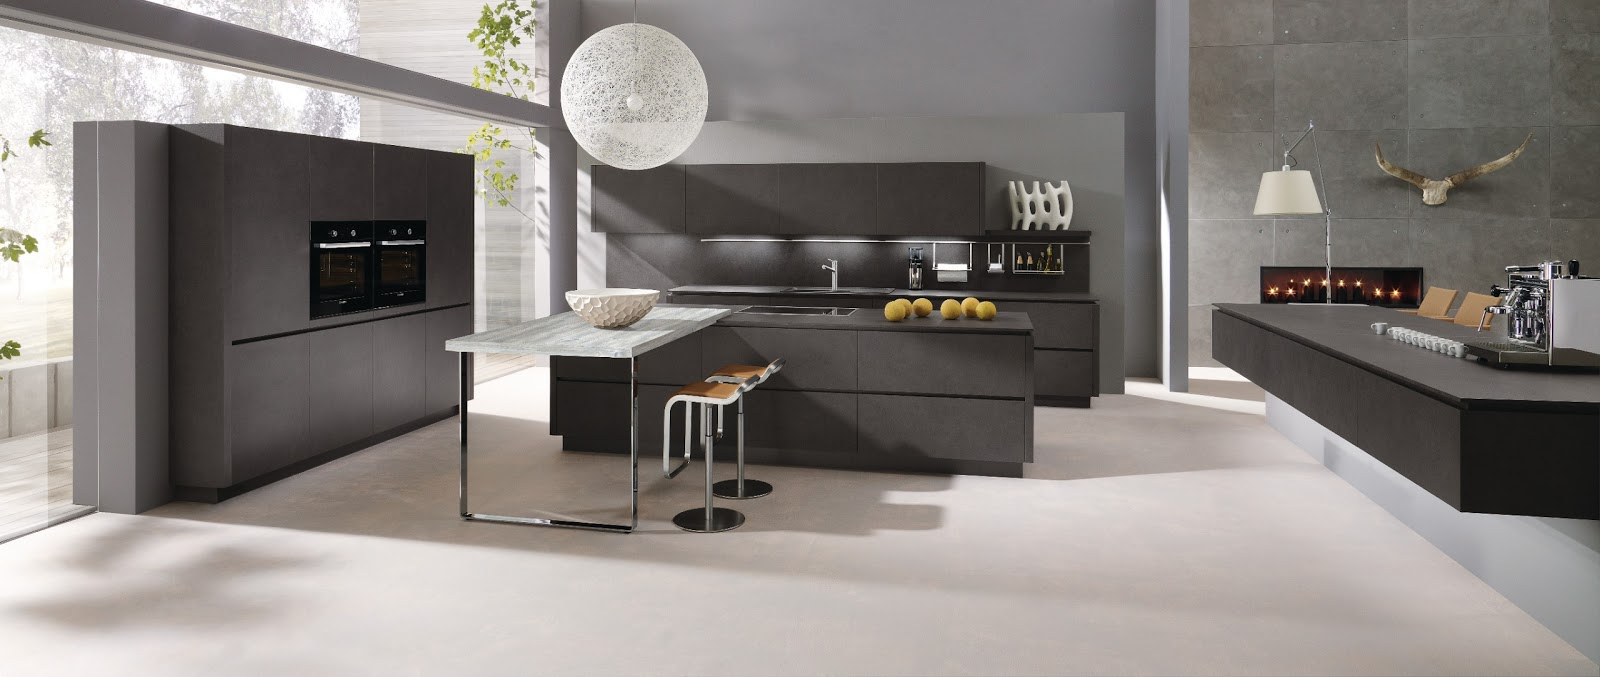 Cuisine design anthracite avec lot for Cuisine grise design